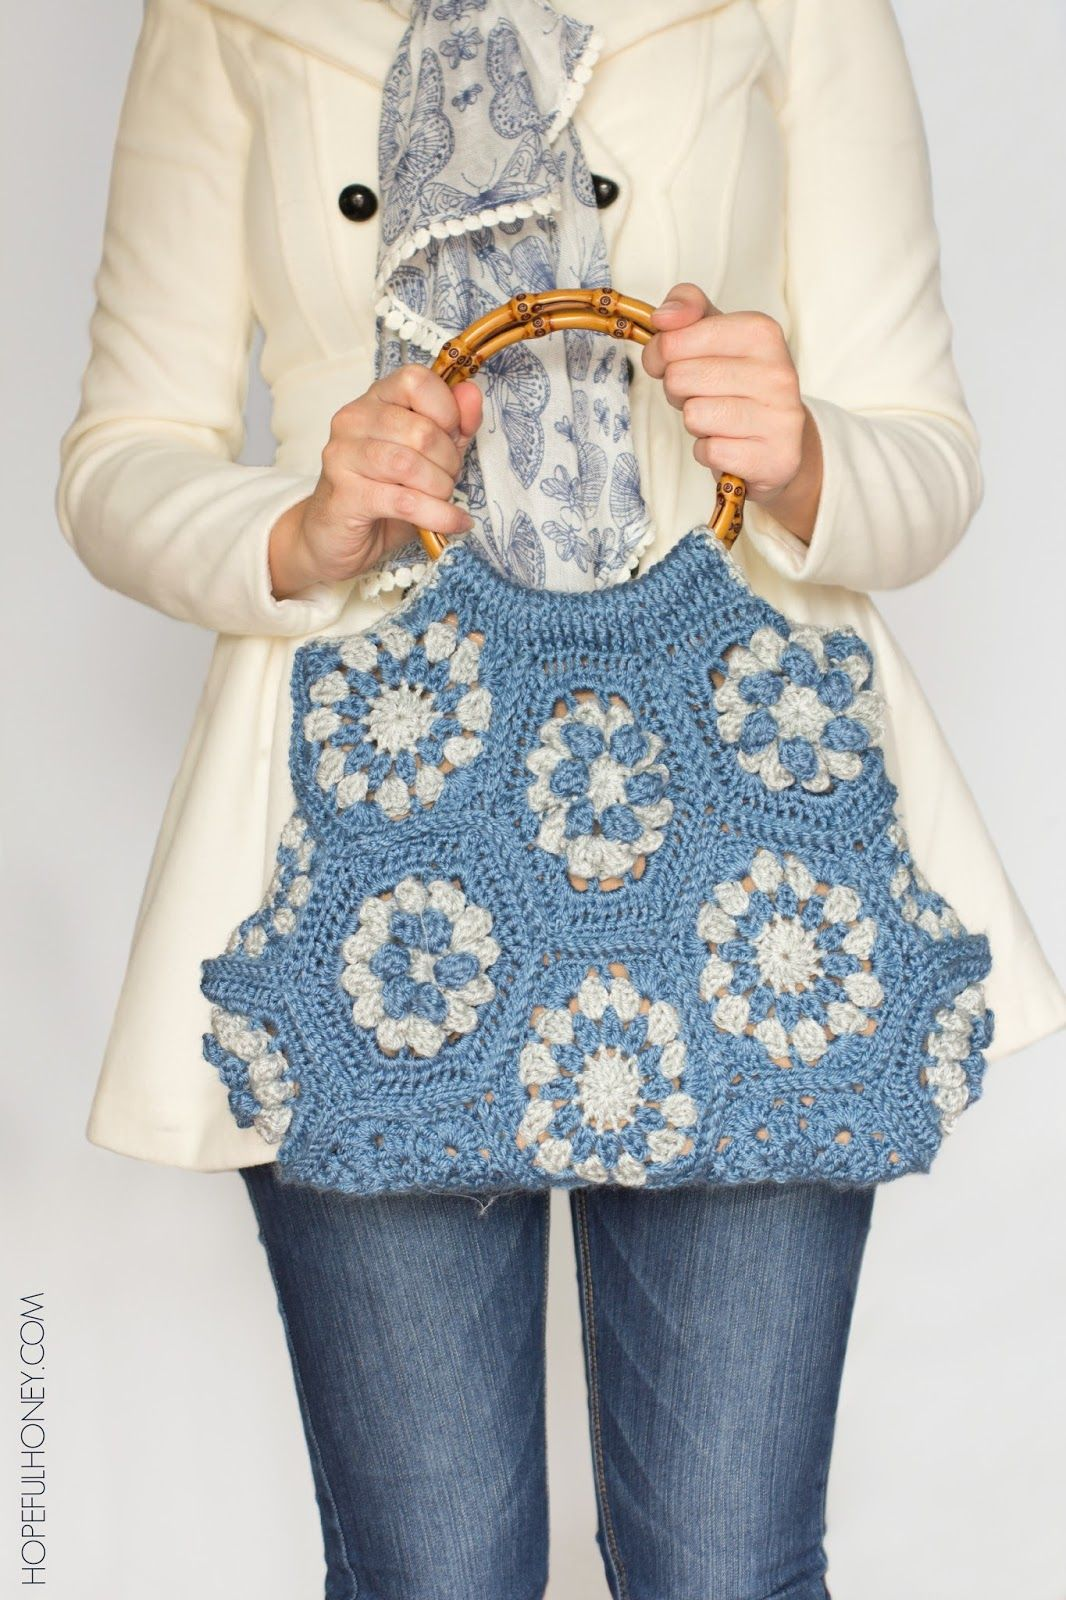 Hexagon+Handbag+Crochet+Pattern+10.jpg 1.066×1.600 pixel | lavori ...